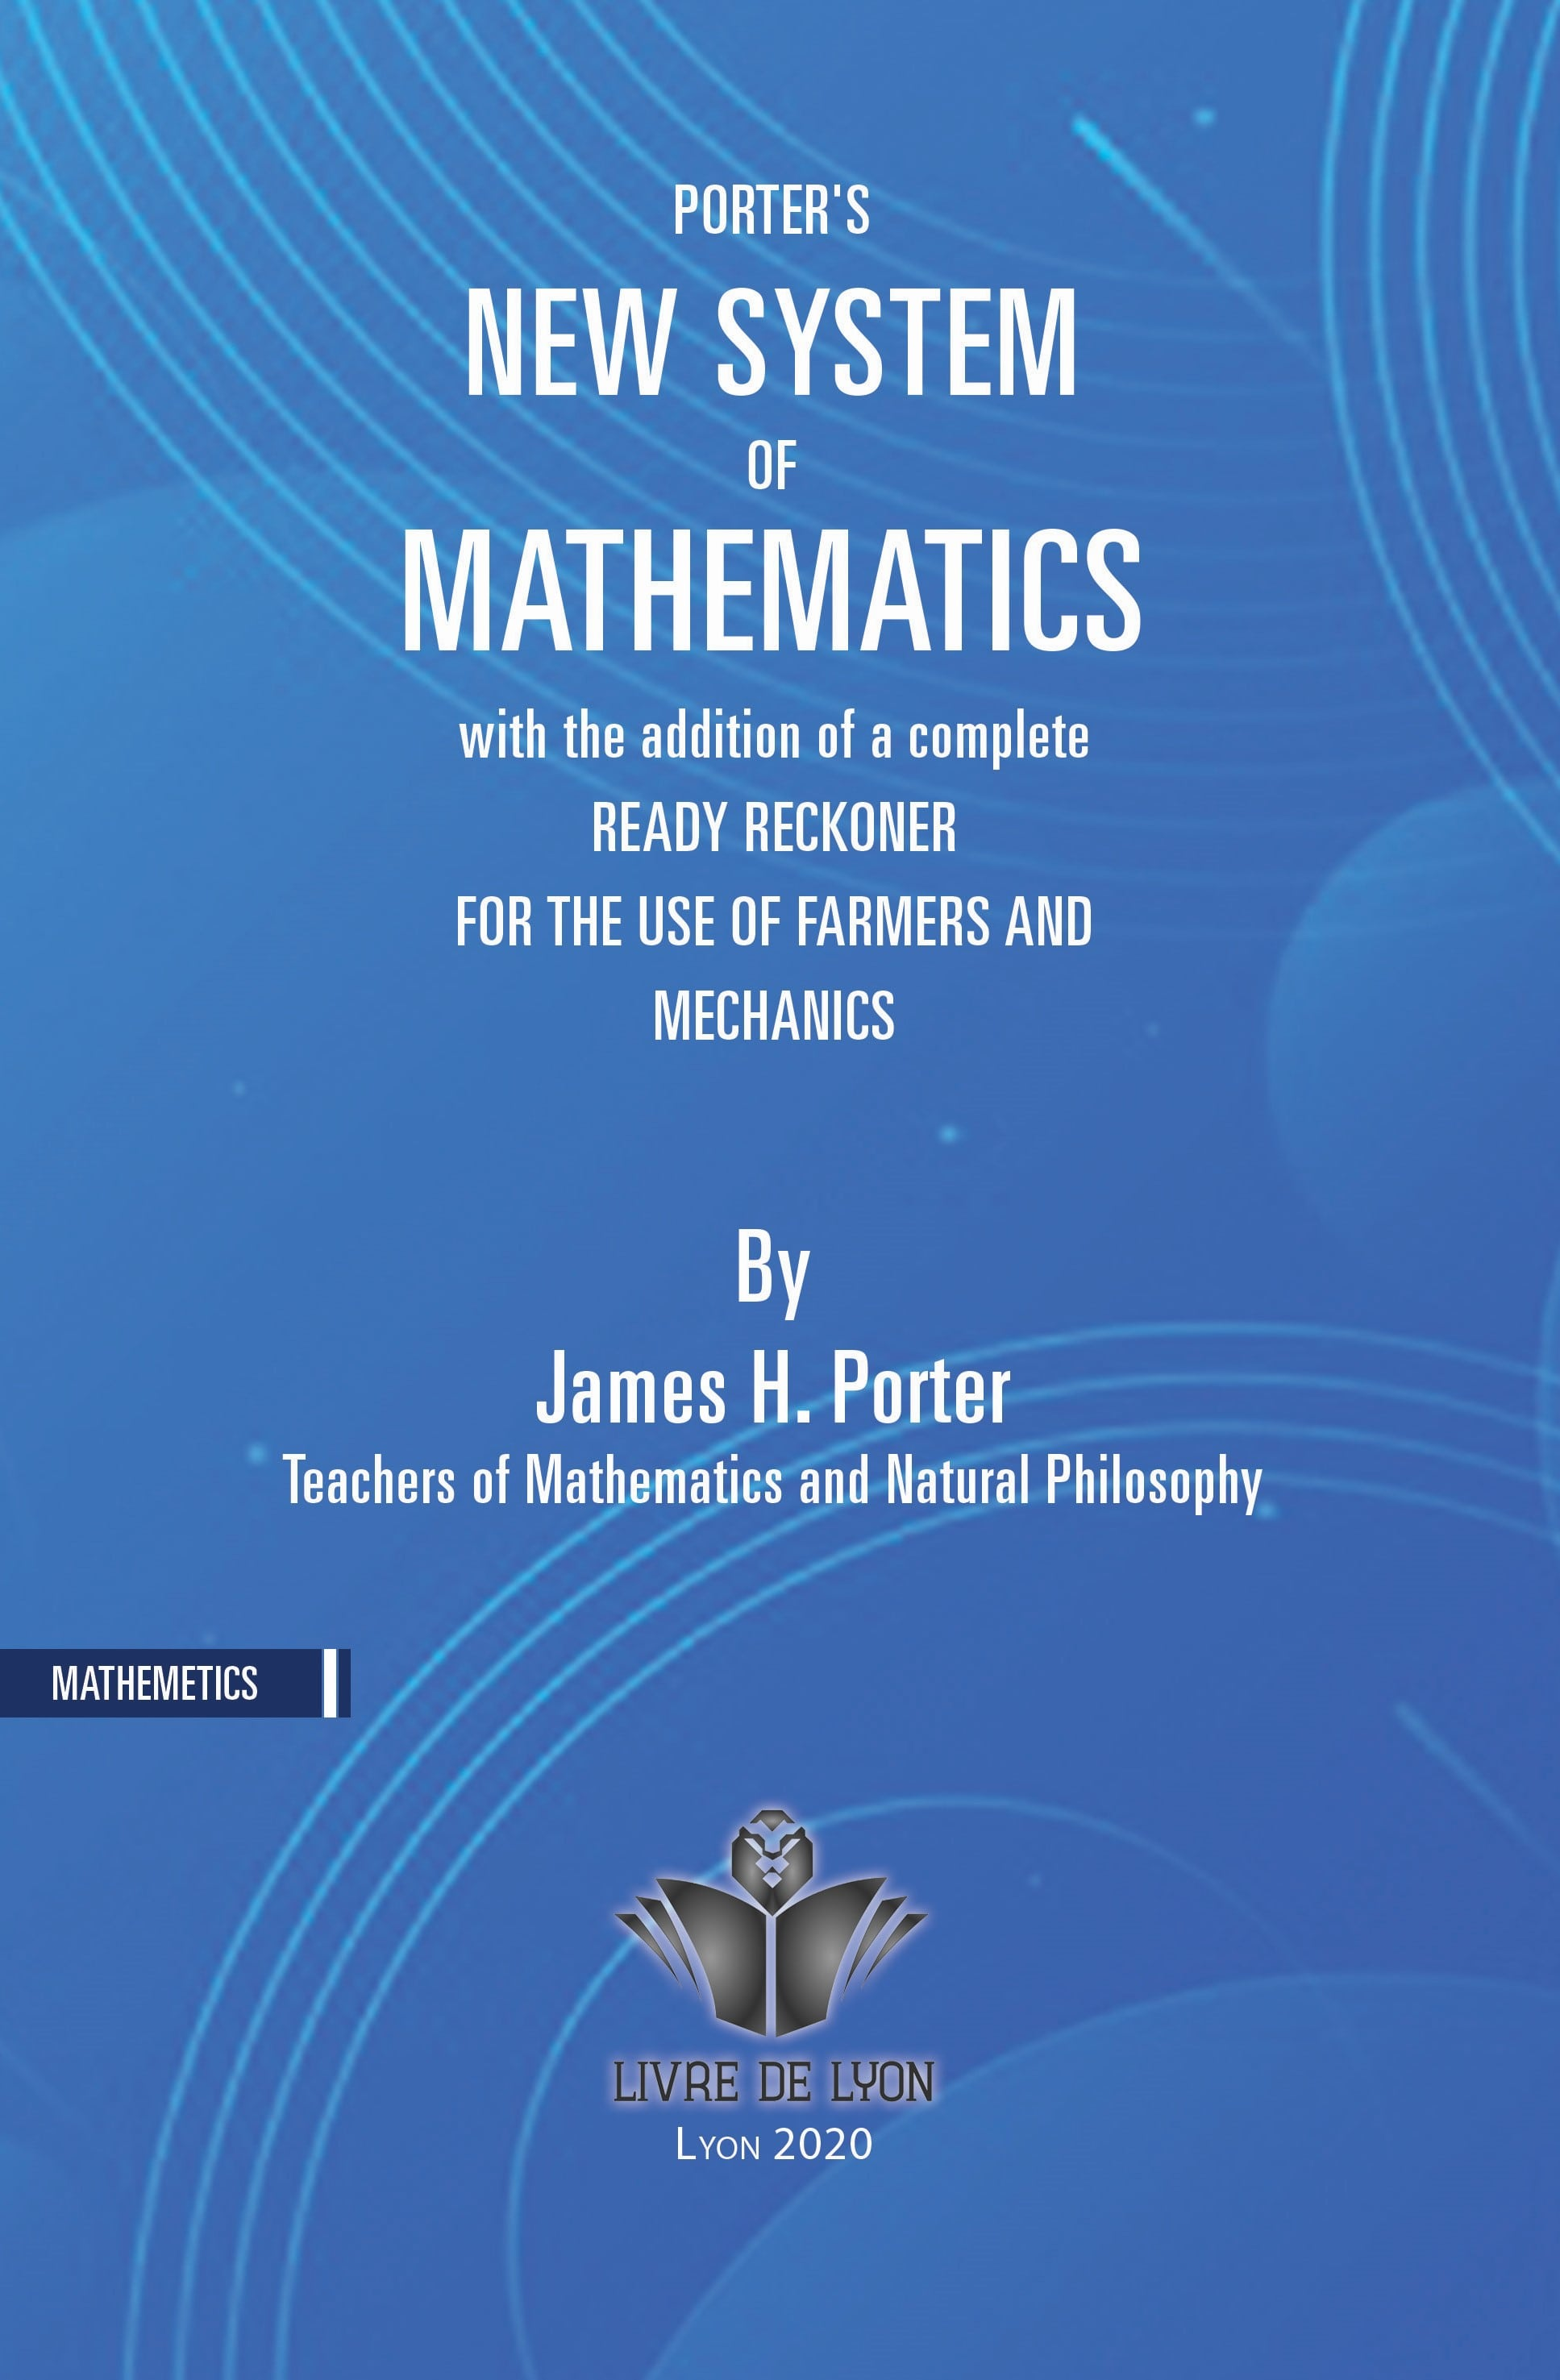 Porter's New System of Mathematics